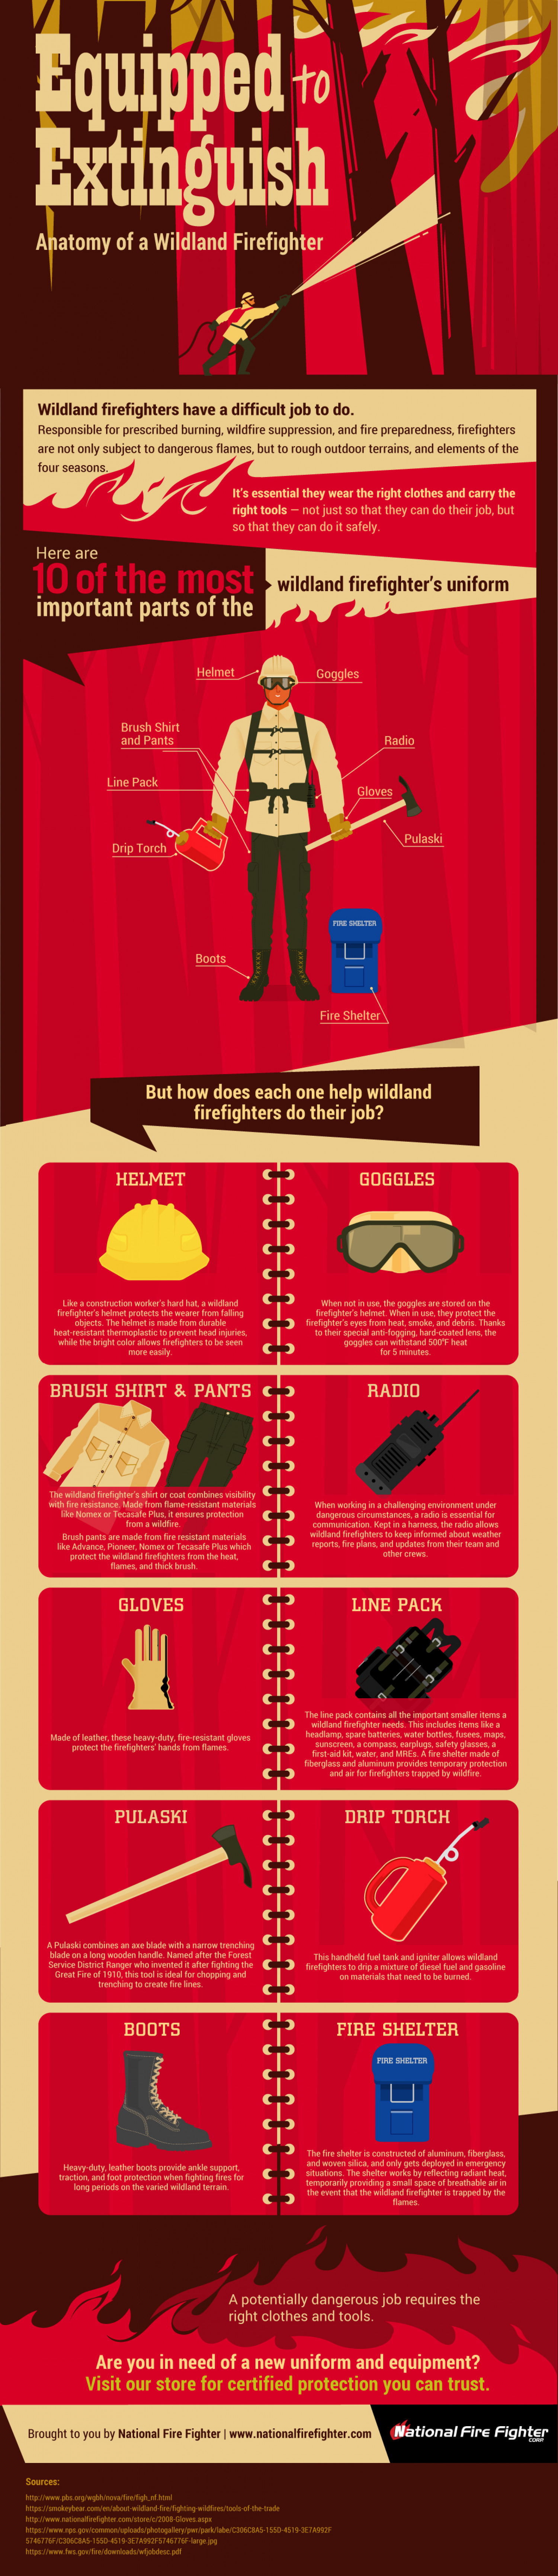 Equipped to Extinguish: Anatomy of a Wildland Firefighter Infographic